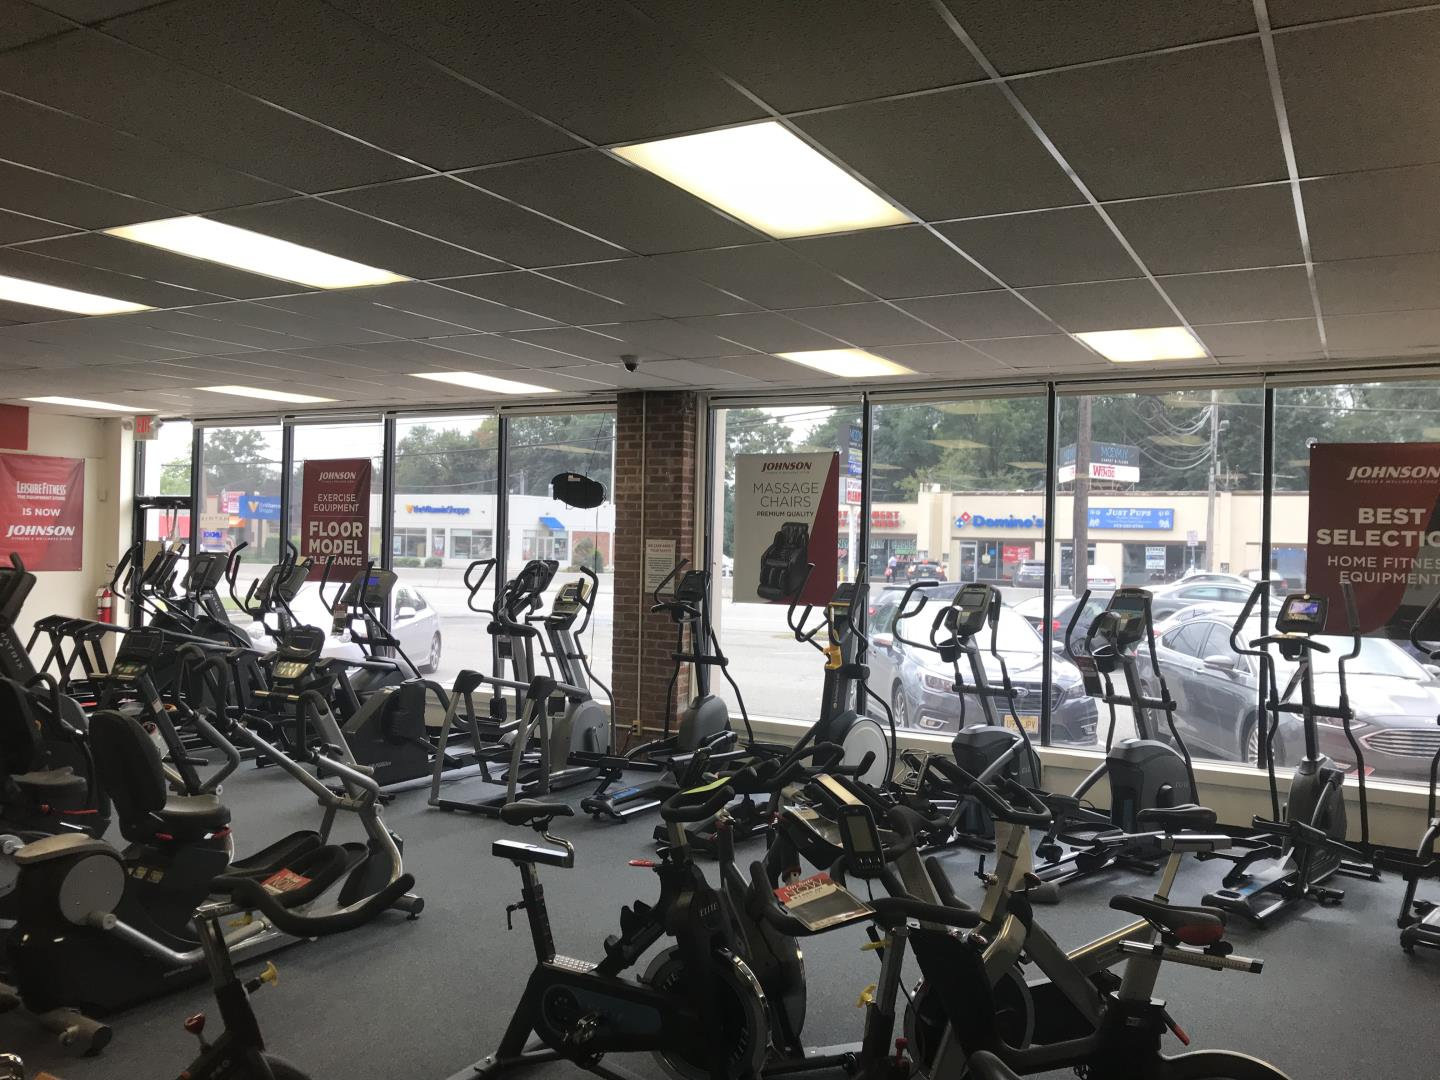 Leisure Fitness - East Hanover, NJ